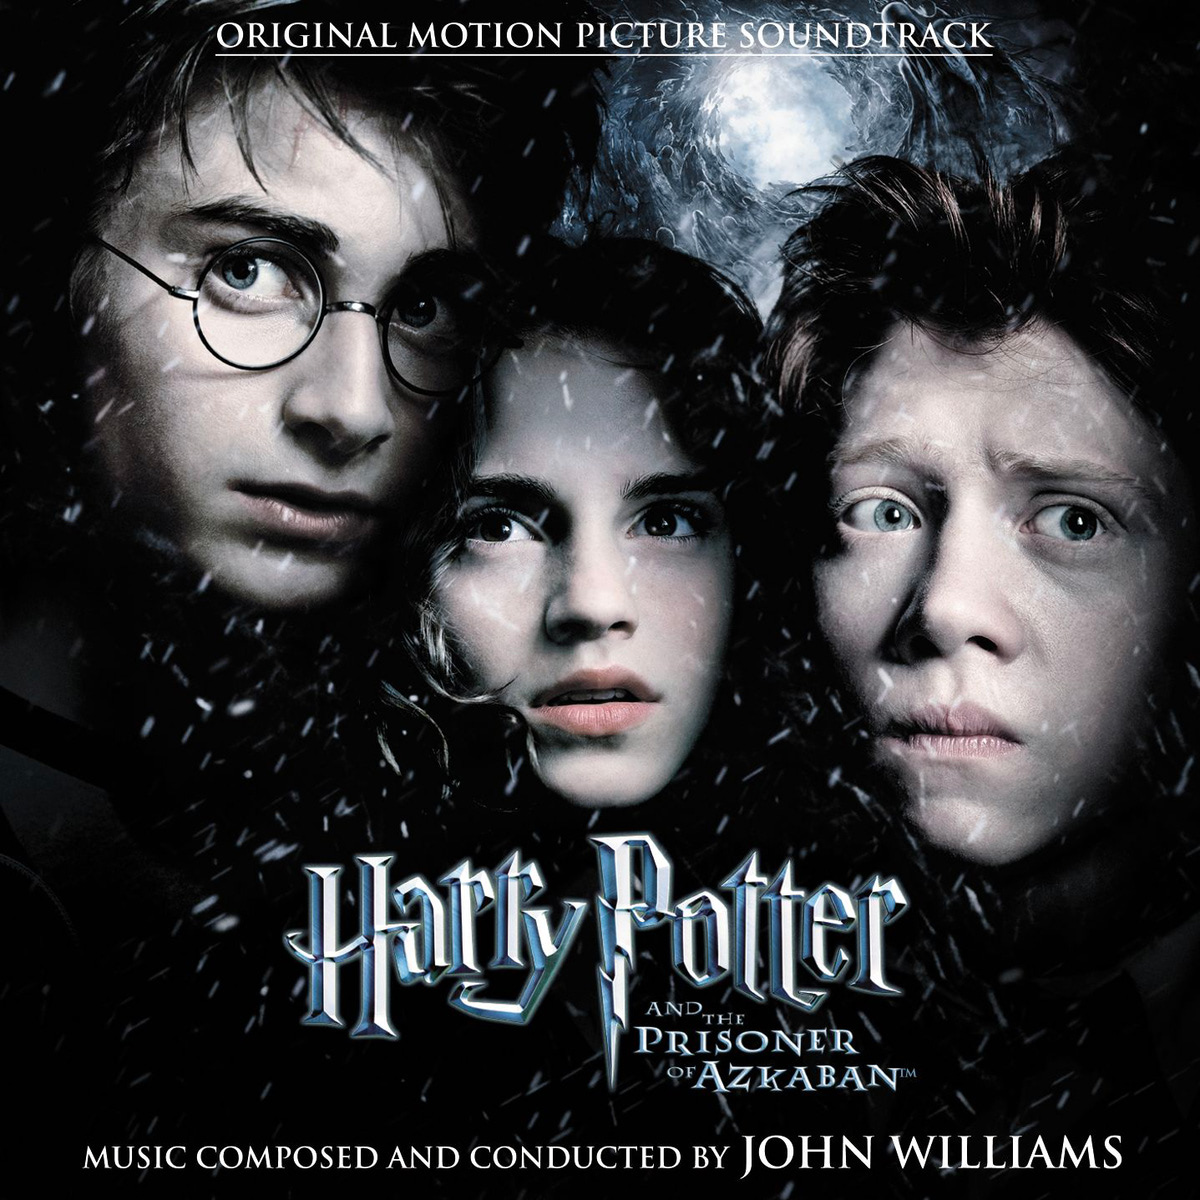 'Prisoner of Azkaban' soundtrack